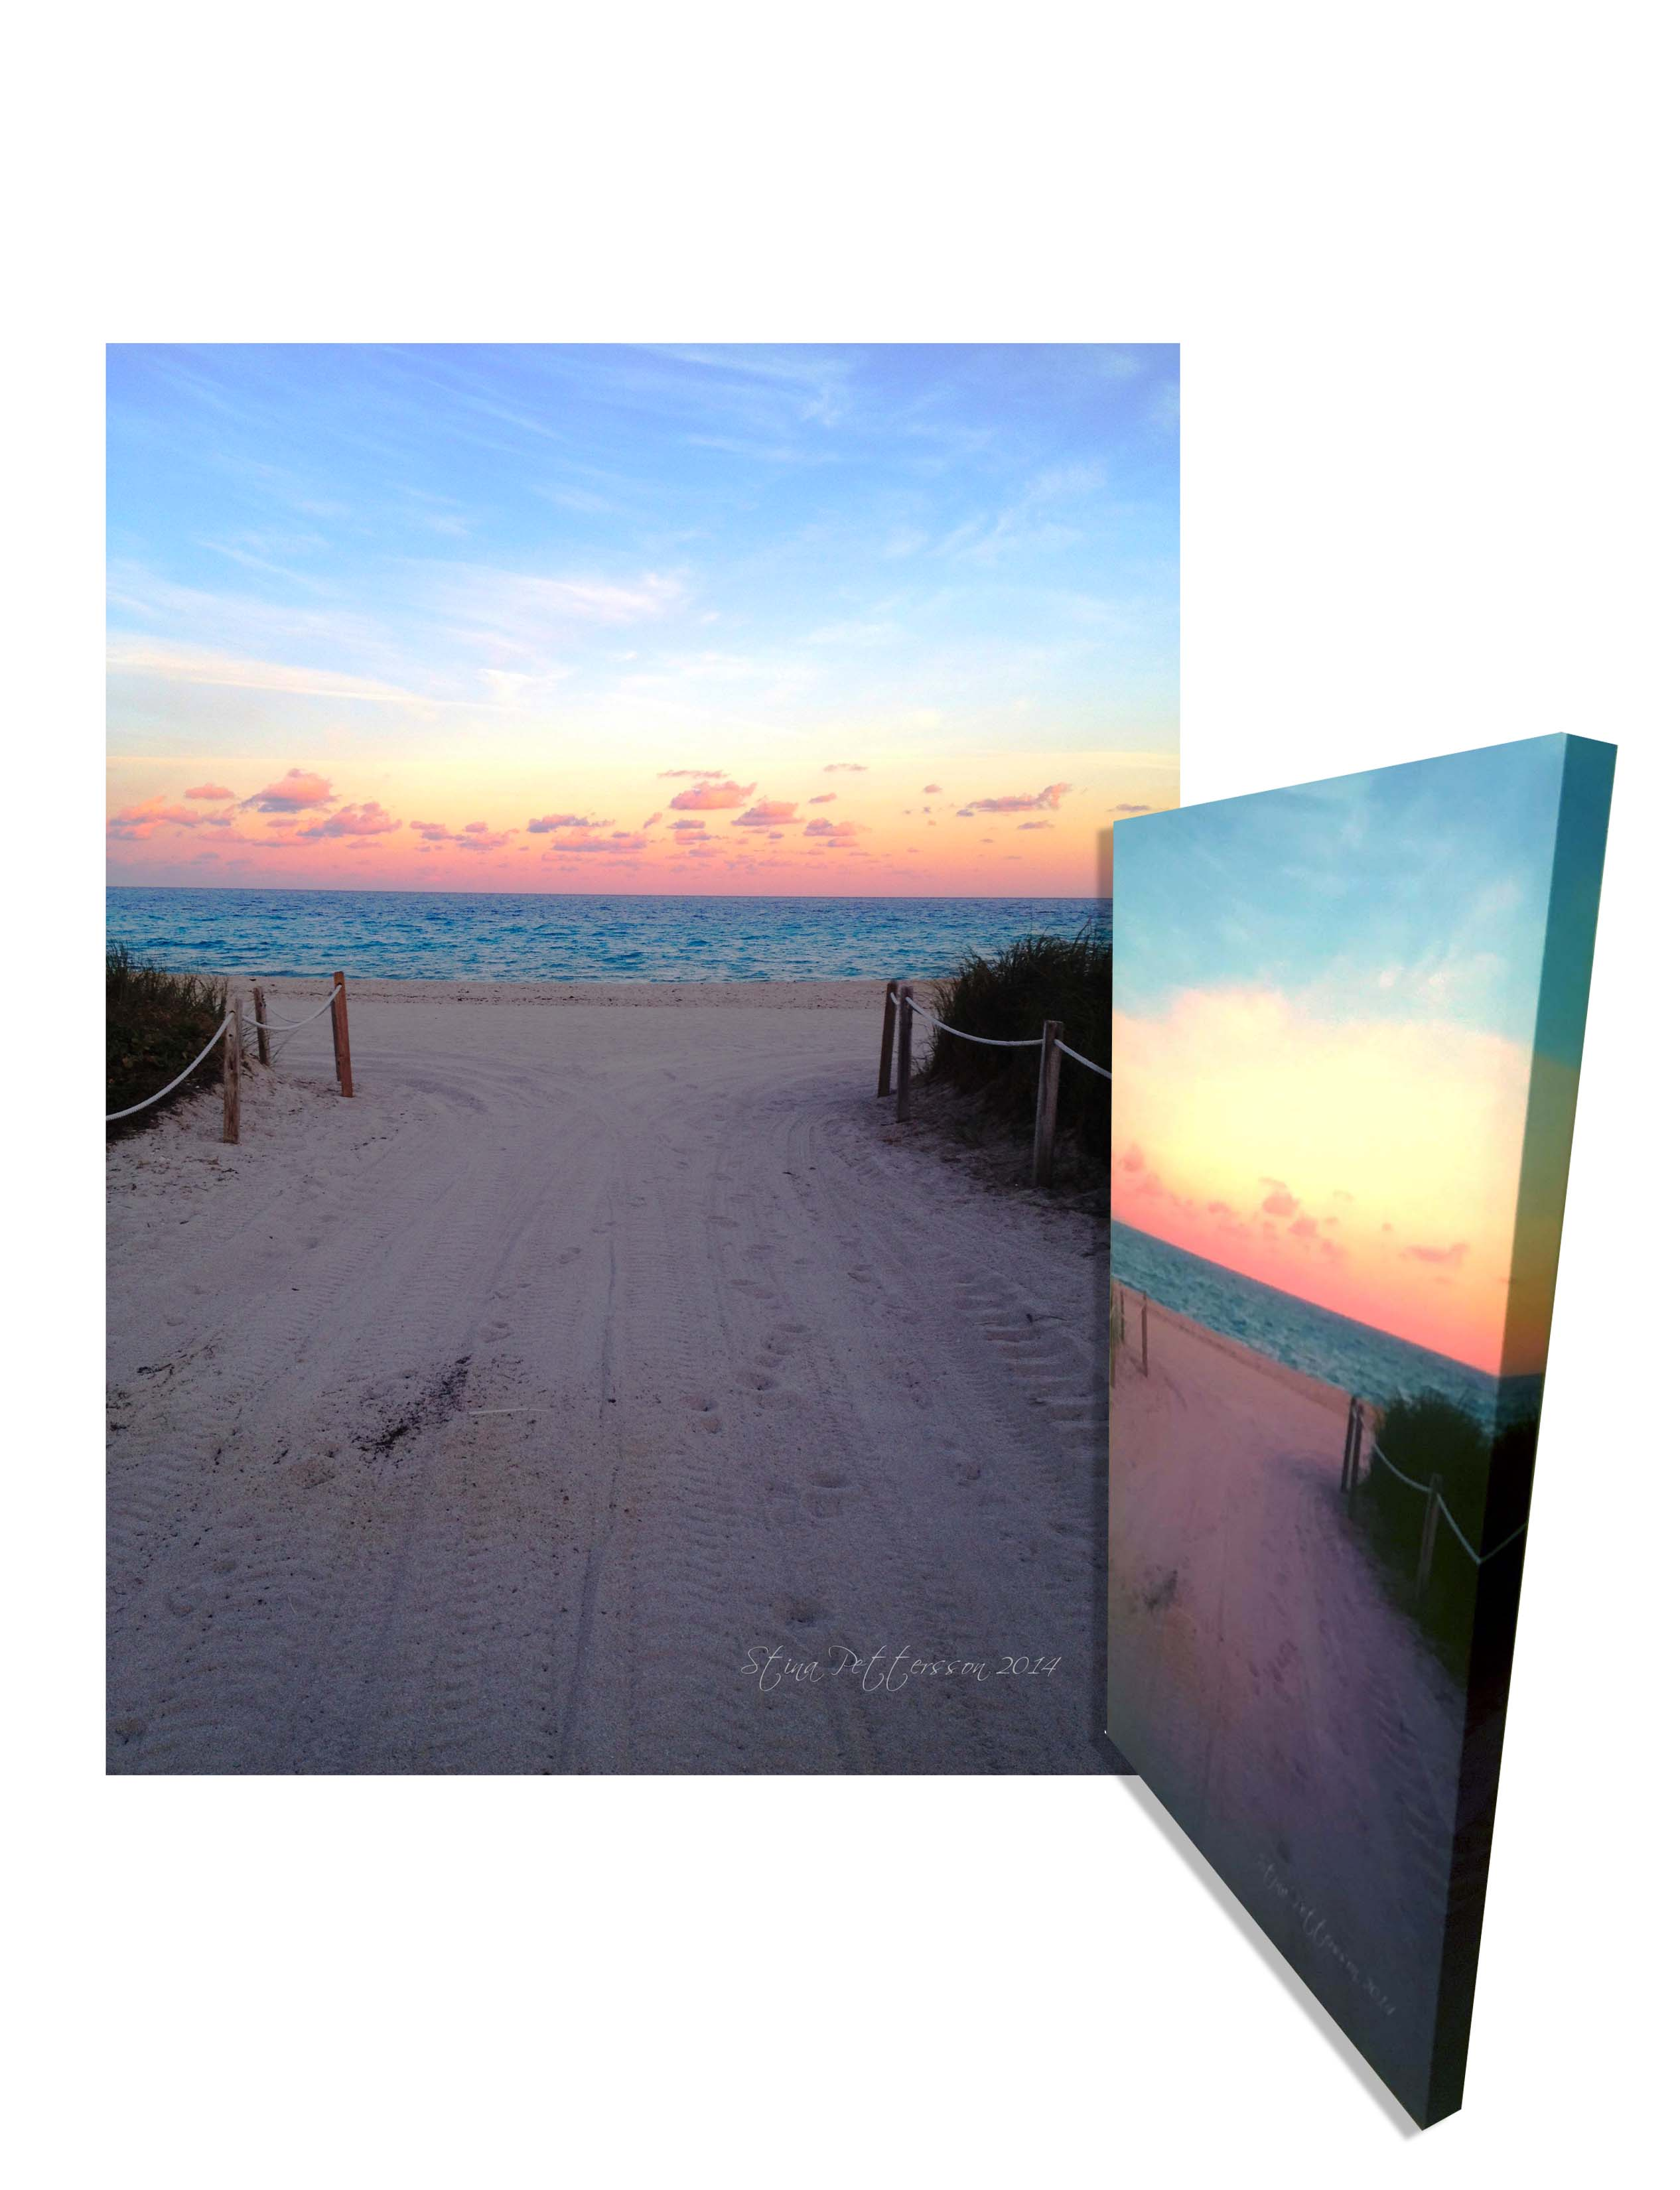 Limited Edition Beautiful Large 24″ x 36″ Canvas Wall Art Of the Miami Beach Sunset – FREE Shipping